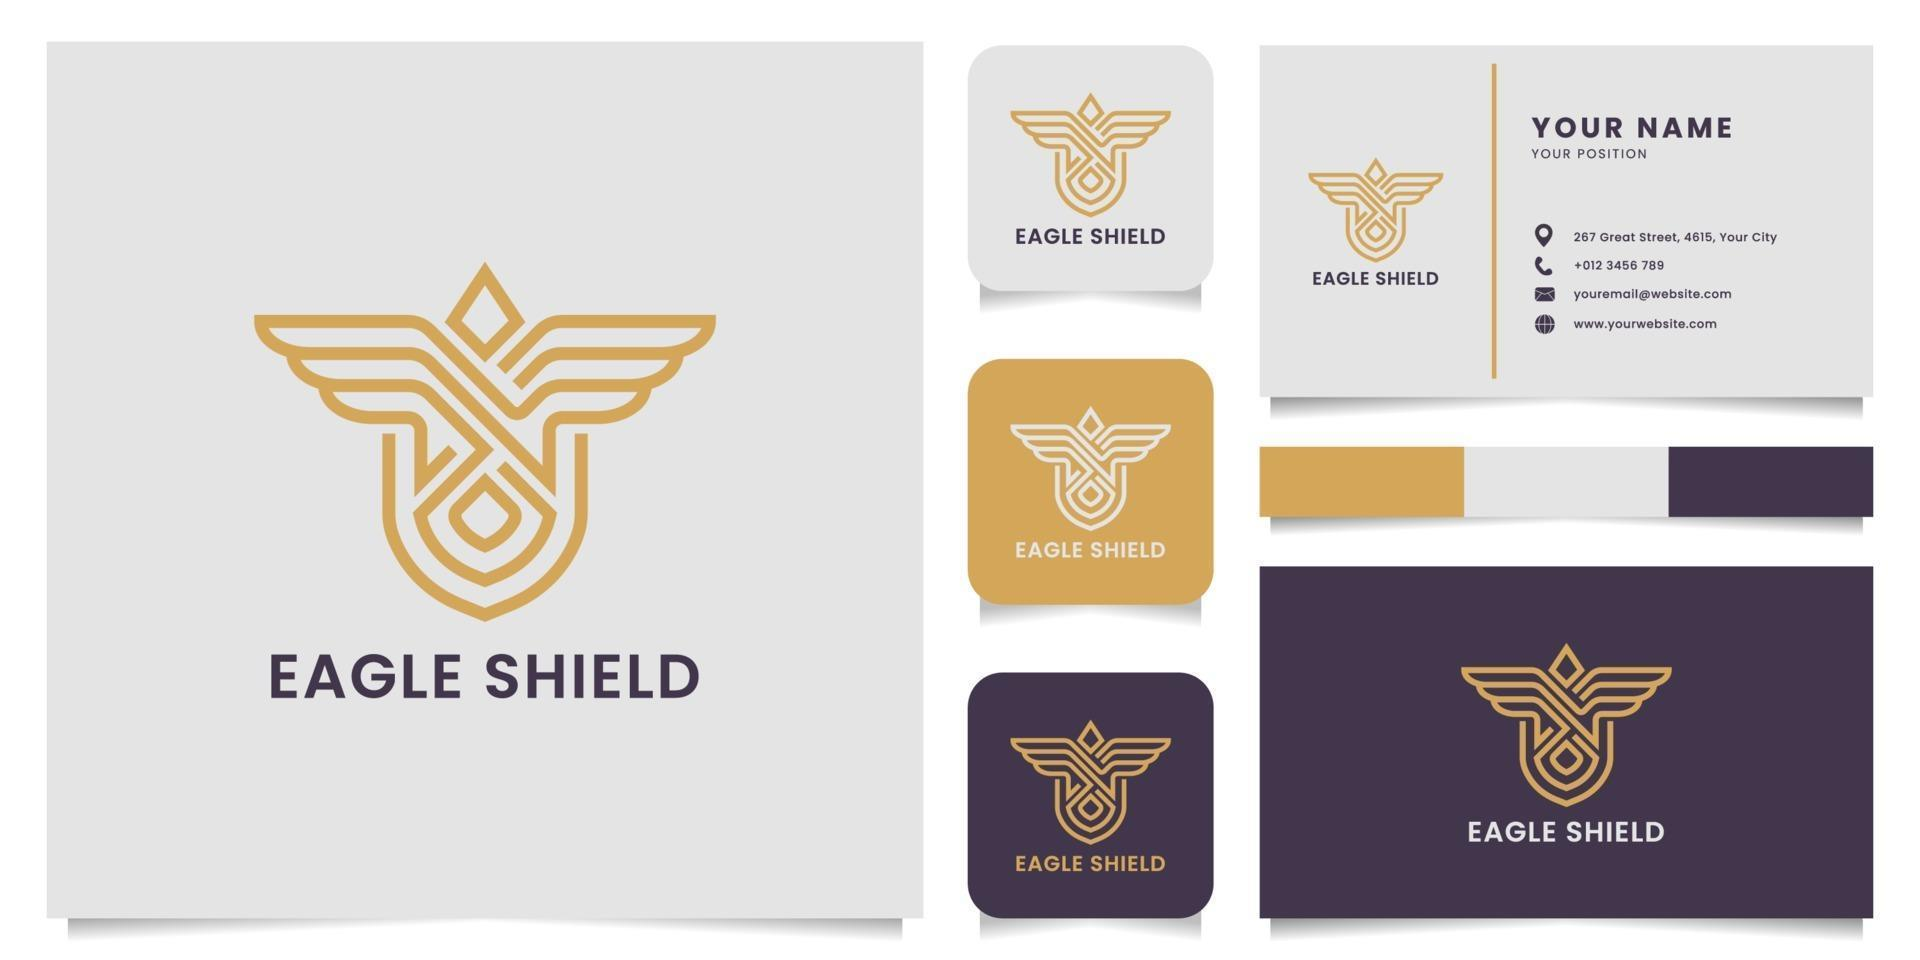 Gold Line Eagle Shield Logo with Business Card vector